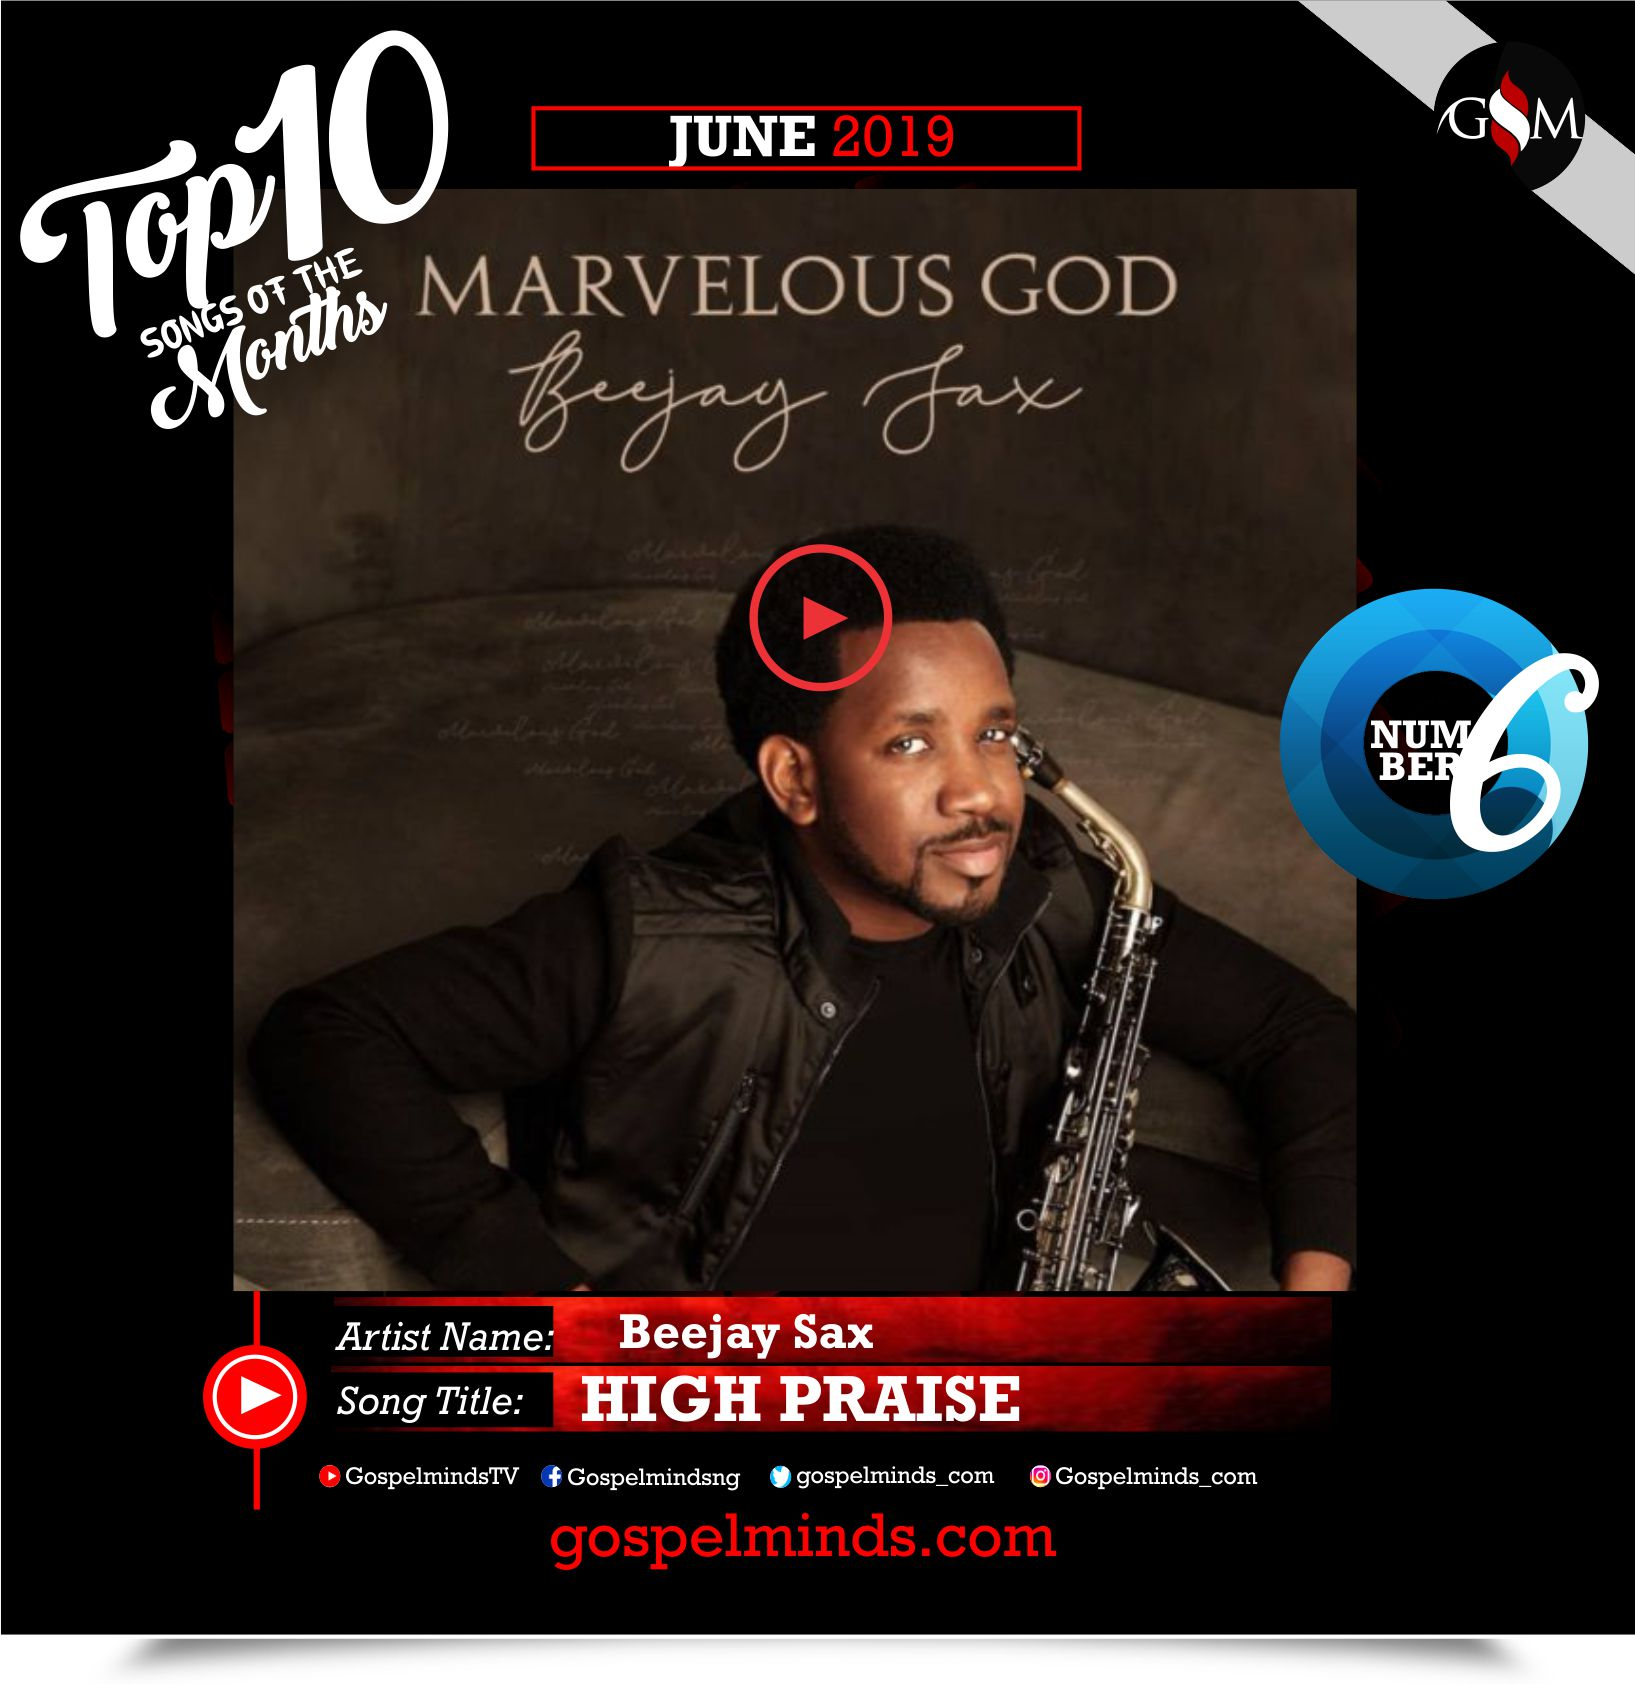 Top 10 Gospel Songs of The Month - June 2019 GospelMinds Ent. (Beejay Sax – High Praise)